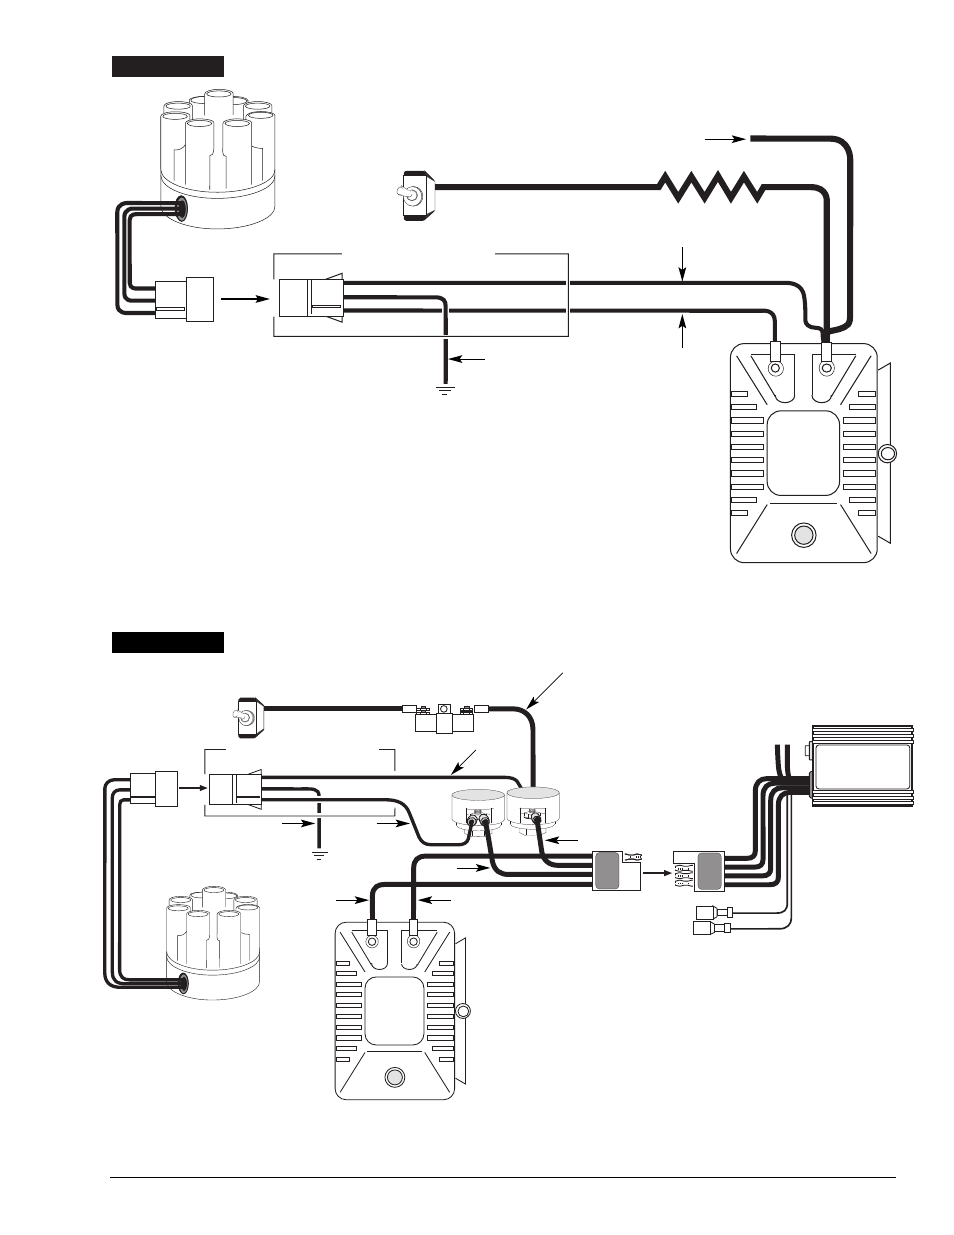 mallory ignition wiring diagram magneto detailed wiring diagram Motorcycle Headlight Wiring Diagram mallory unilite ignition wiring diagram motorcycle review and magneto circuit diagram mallory ignition wiring diagram magneto